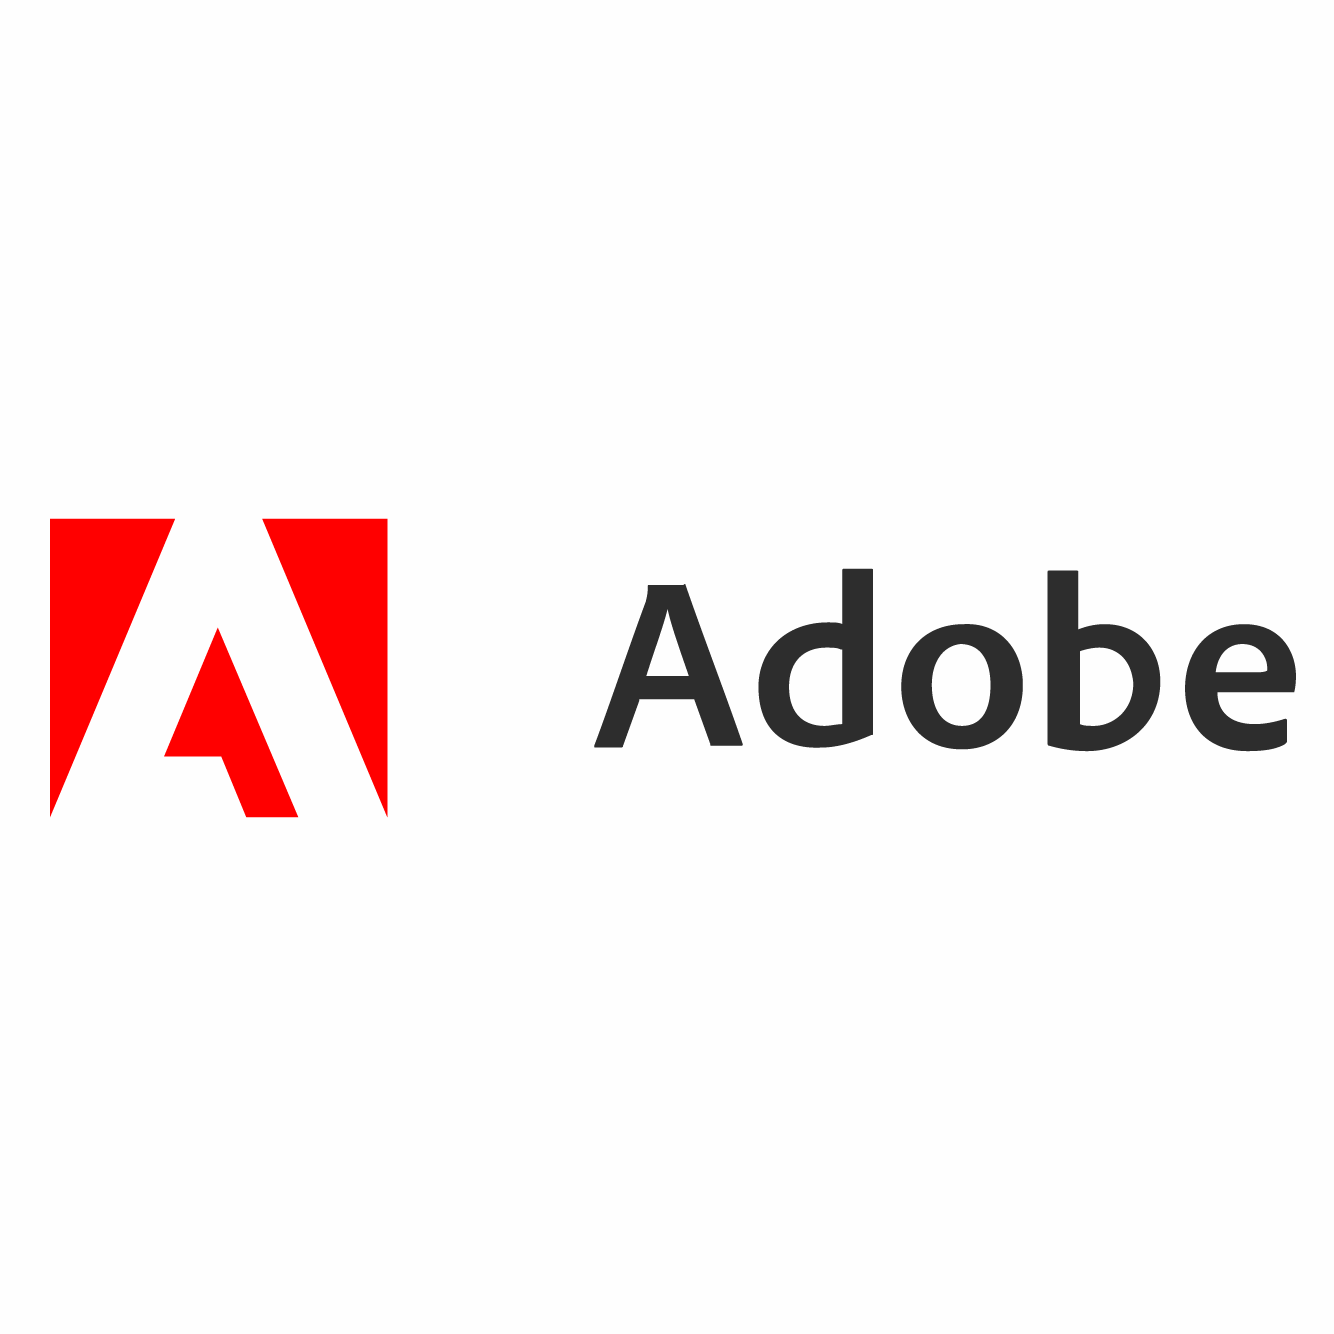 https://www.securetech.ae/wp-content/uploads/2019/02/17.ADOBE_.png